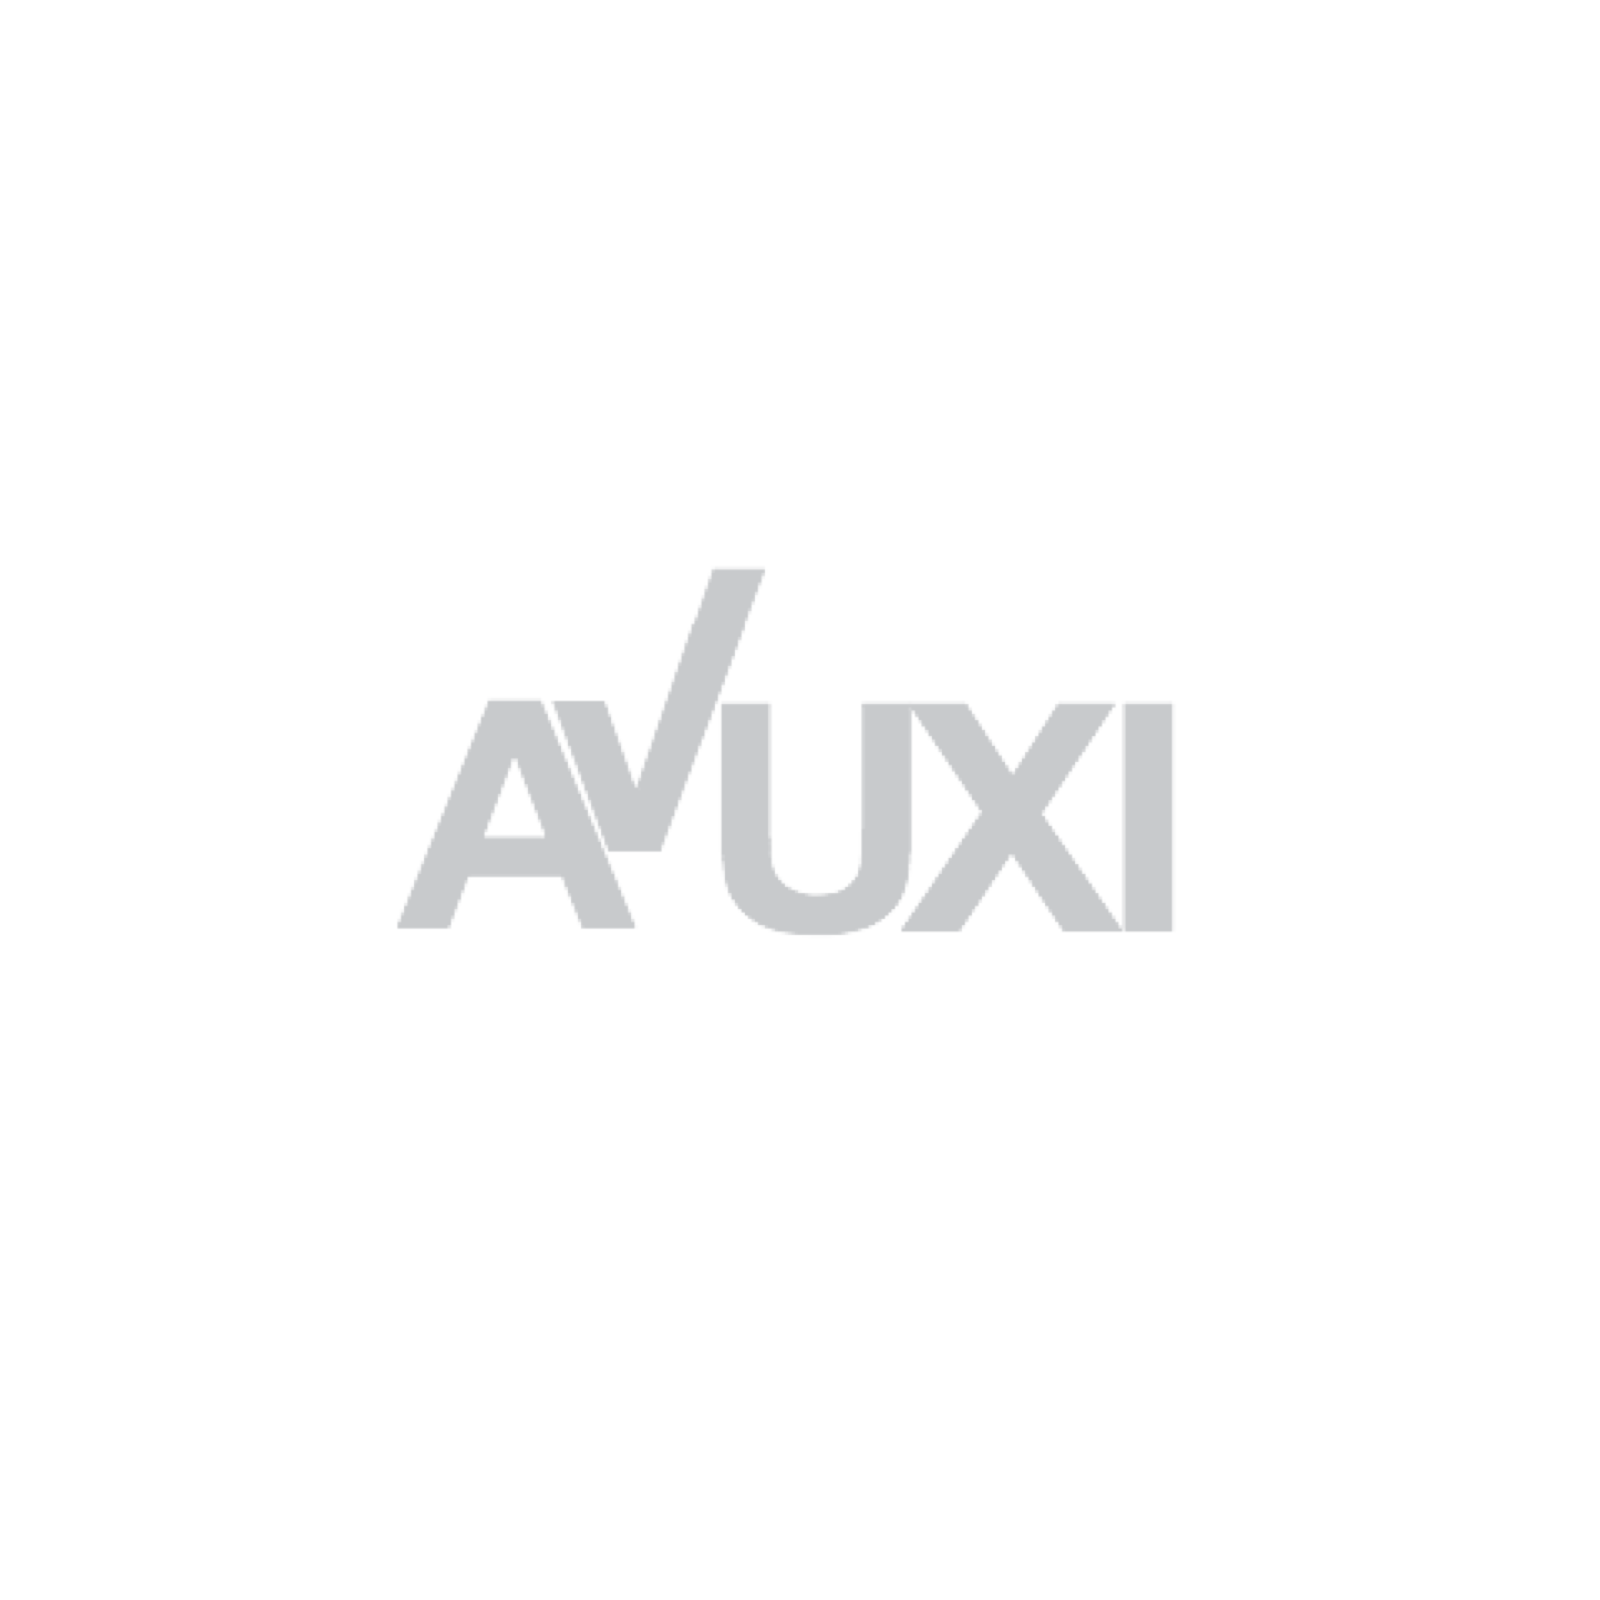 Copy of Avuxi Logo